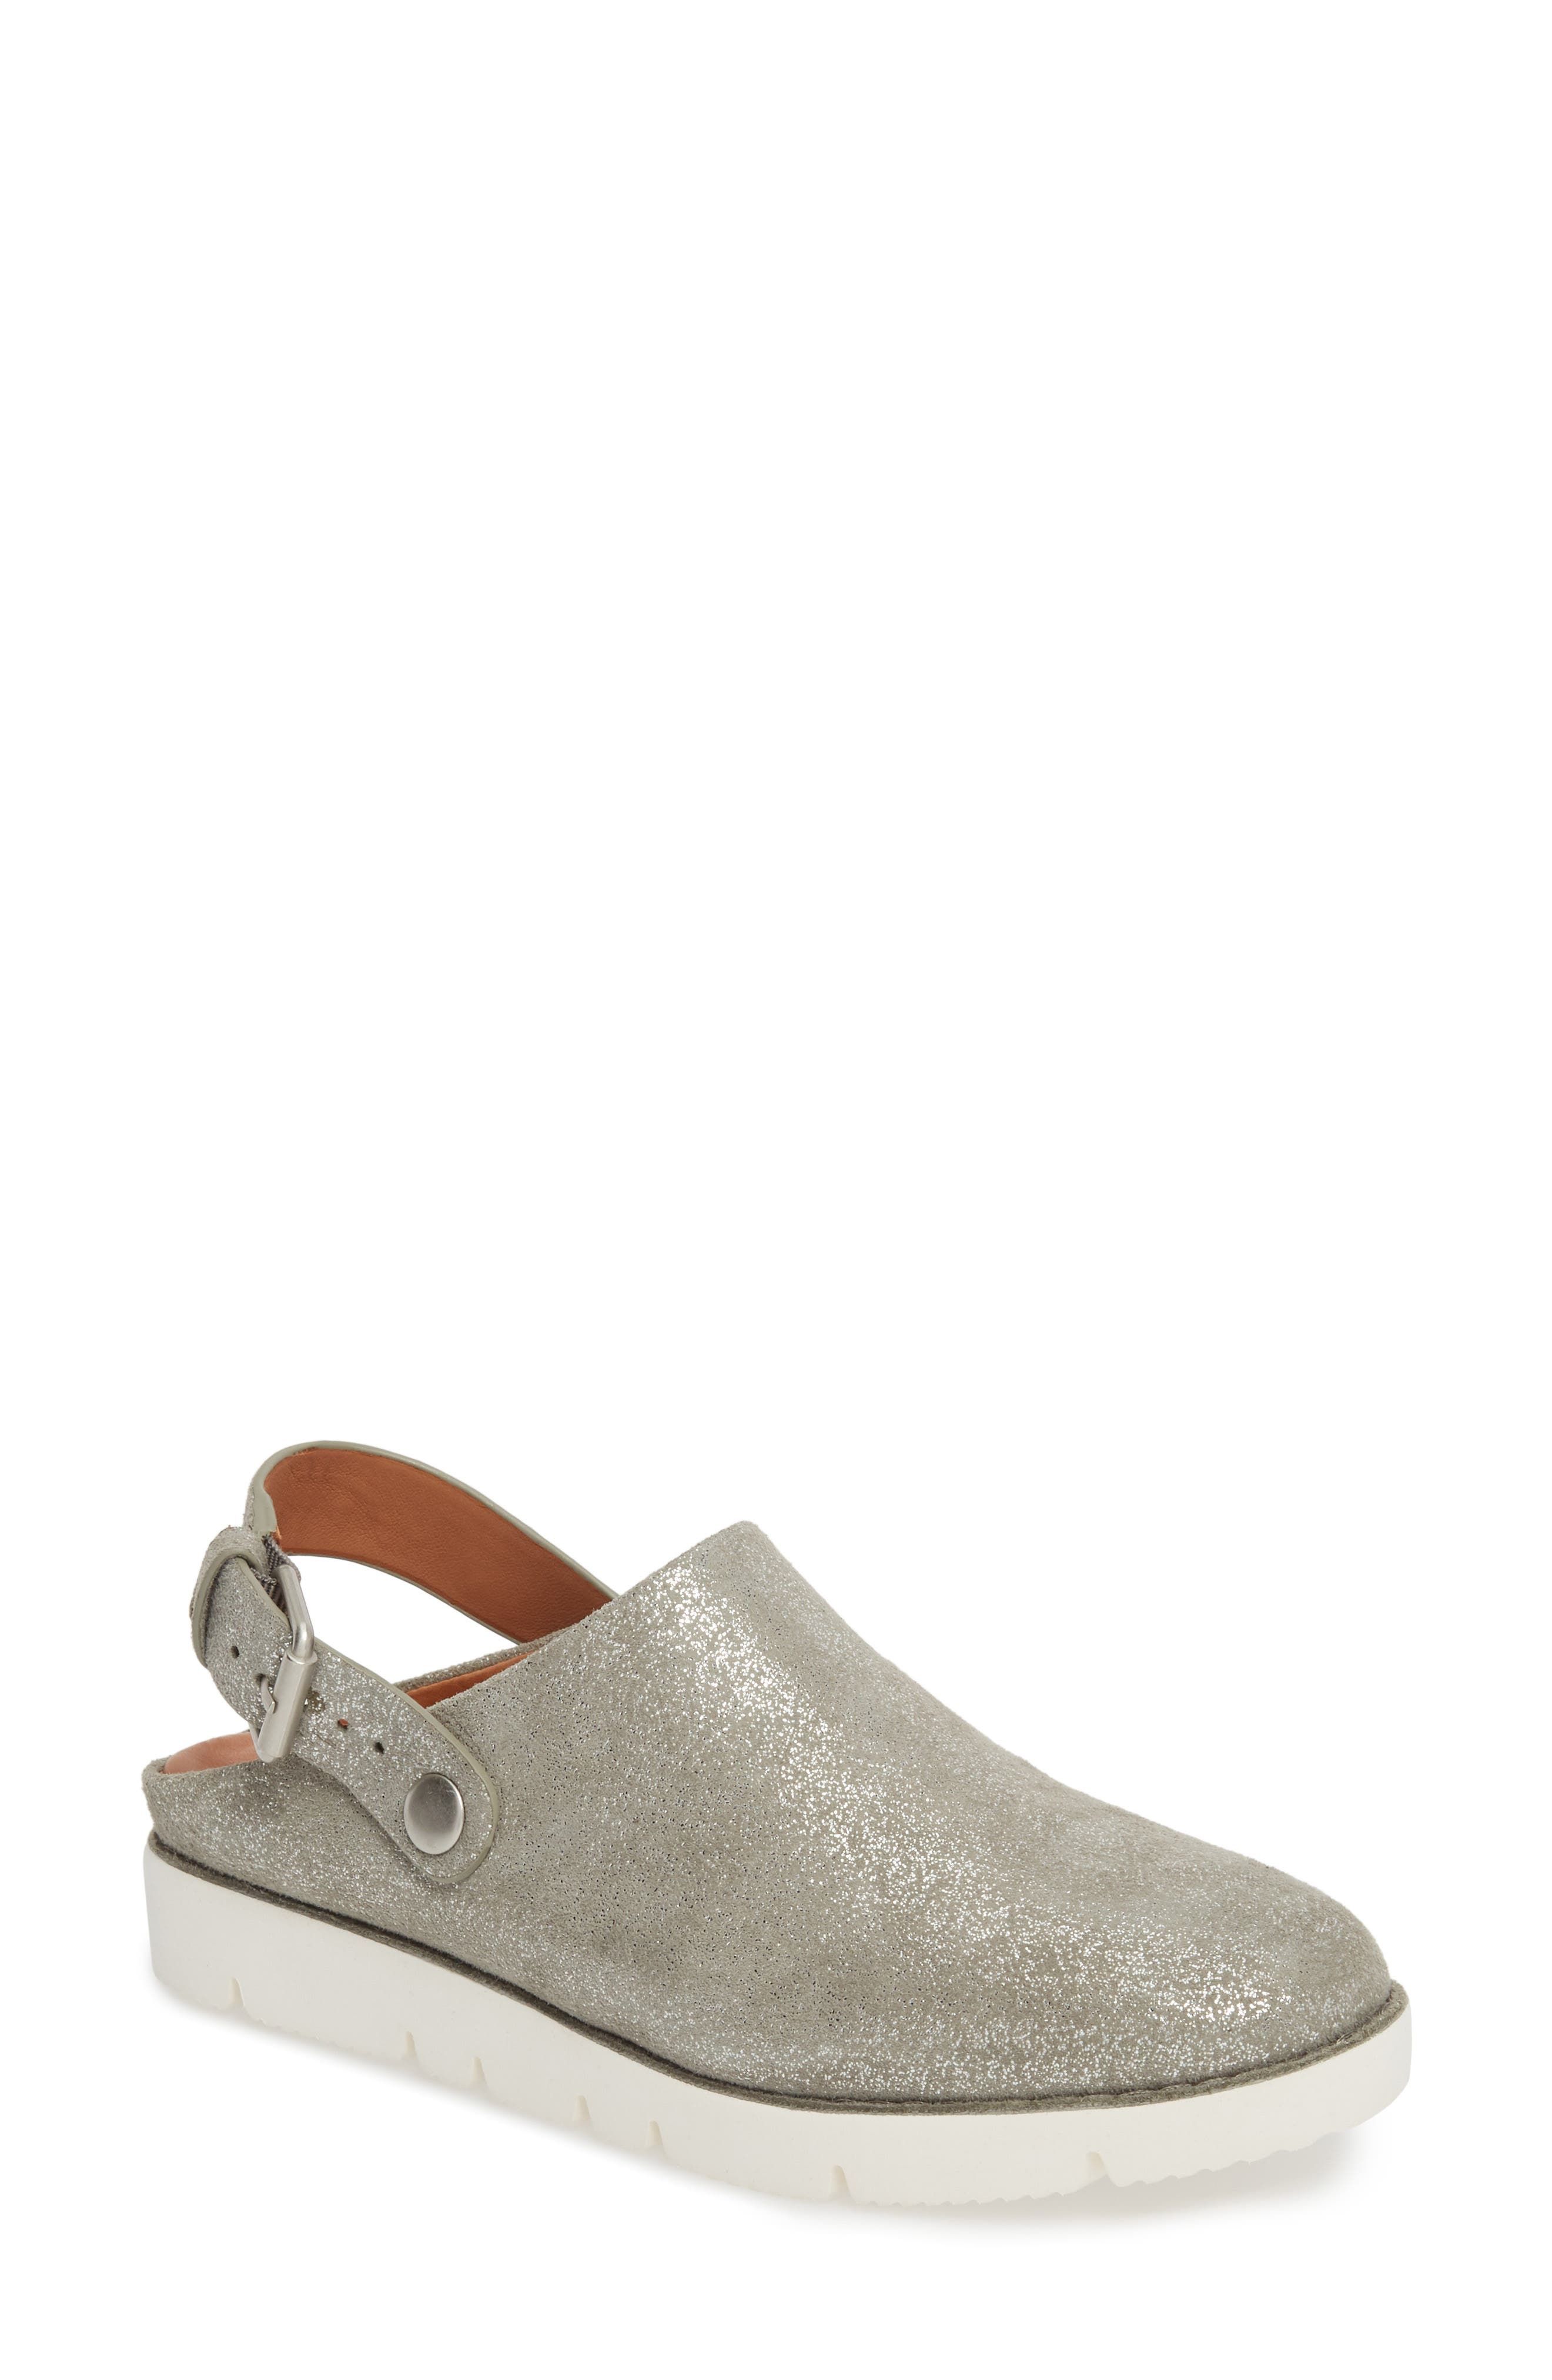 Gentle Souls By Kenneth Cole Esther Convertible Platform Slingback, Metallic